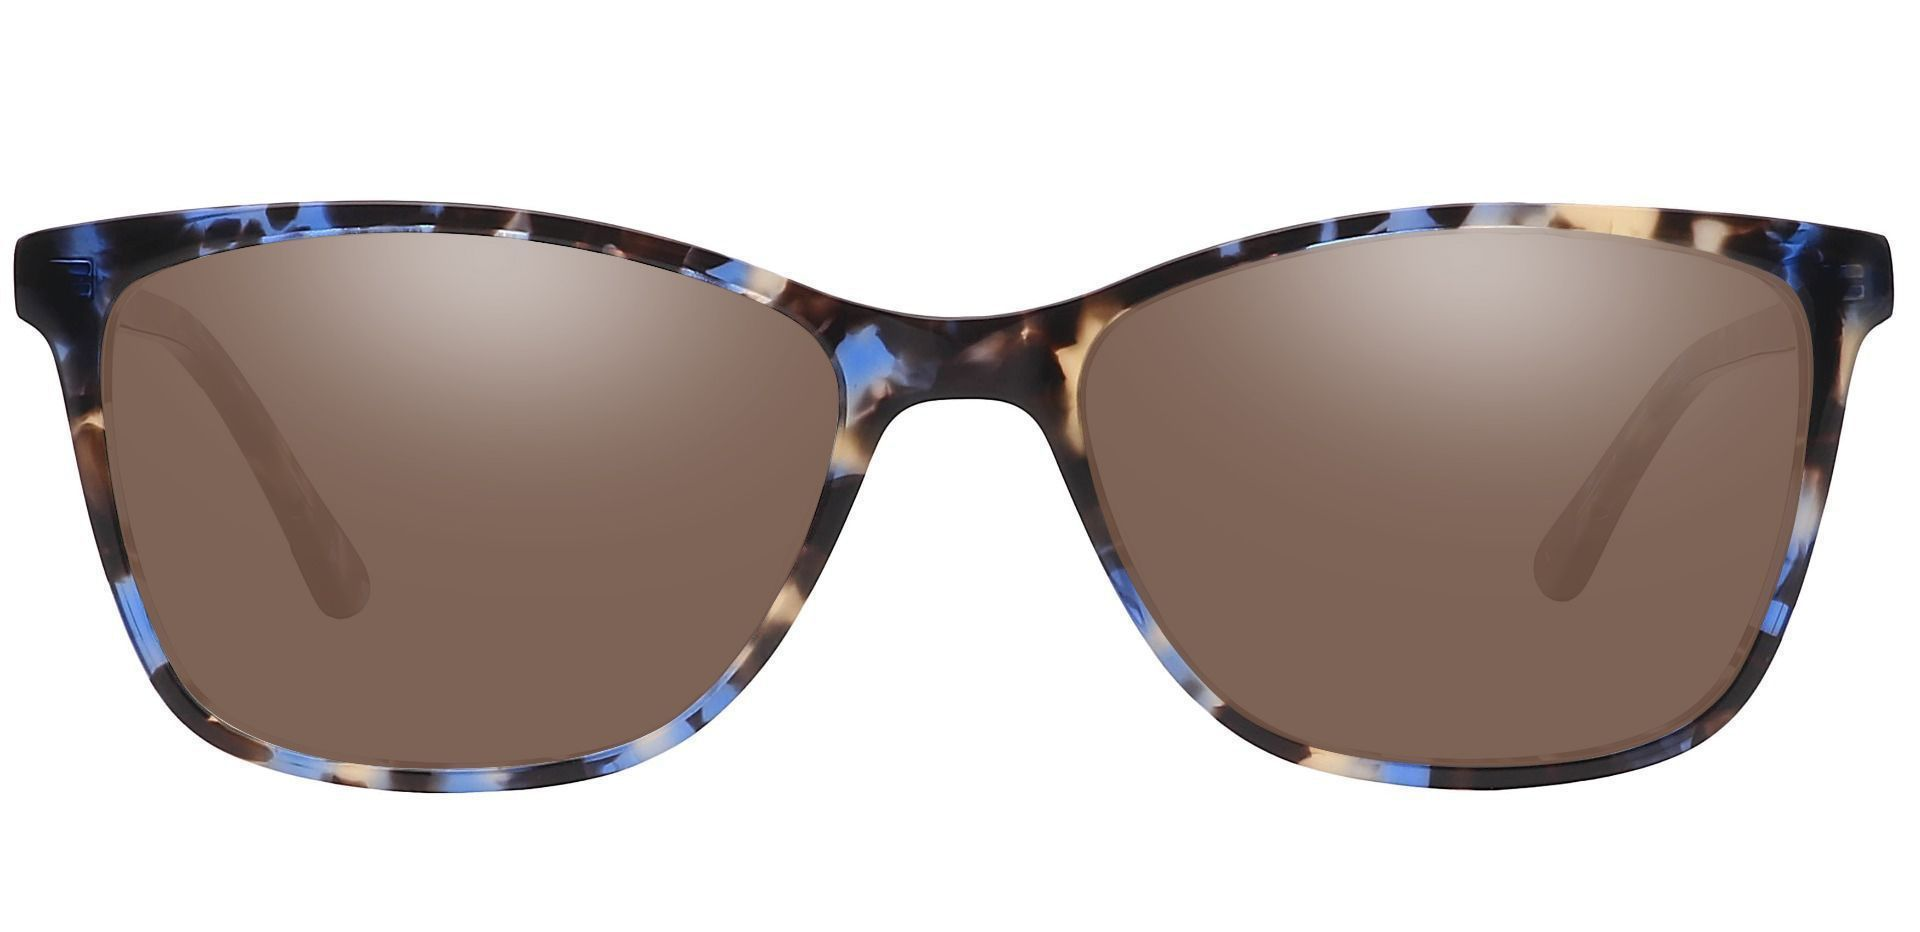 Antonia Square Prescription Sunglasses - Black Frame With Brown Lenses